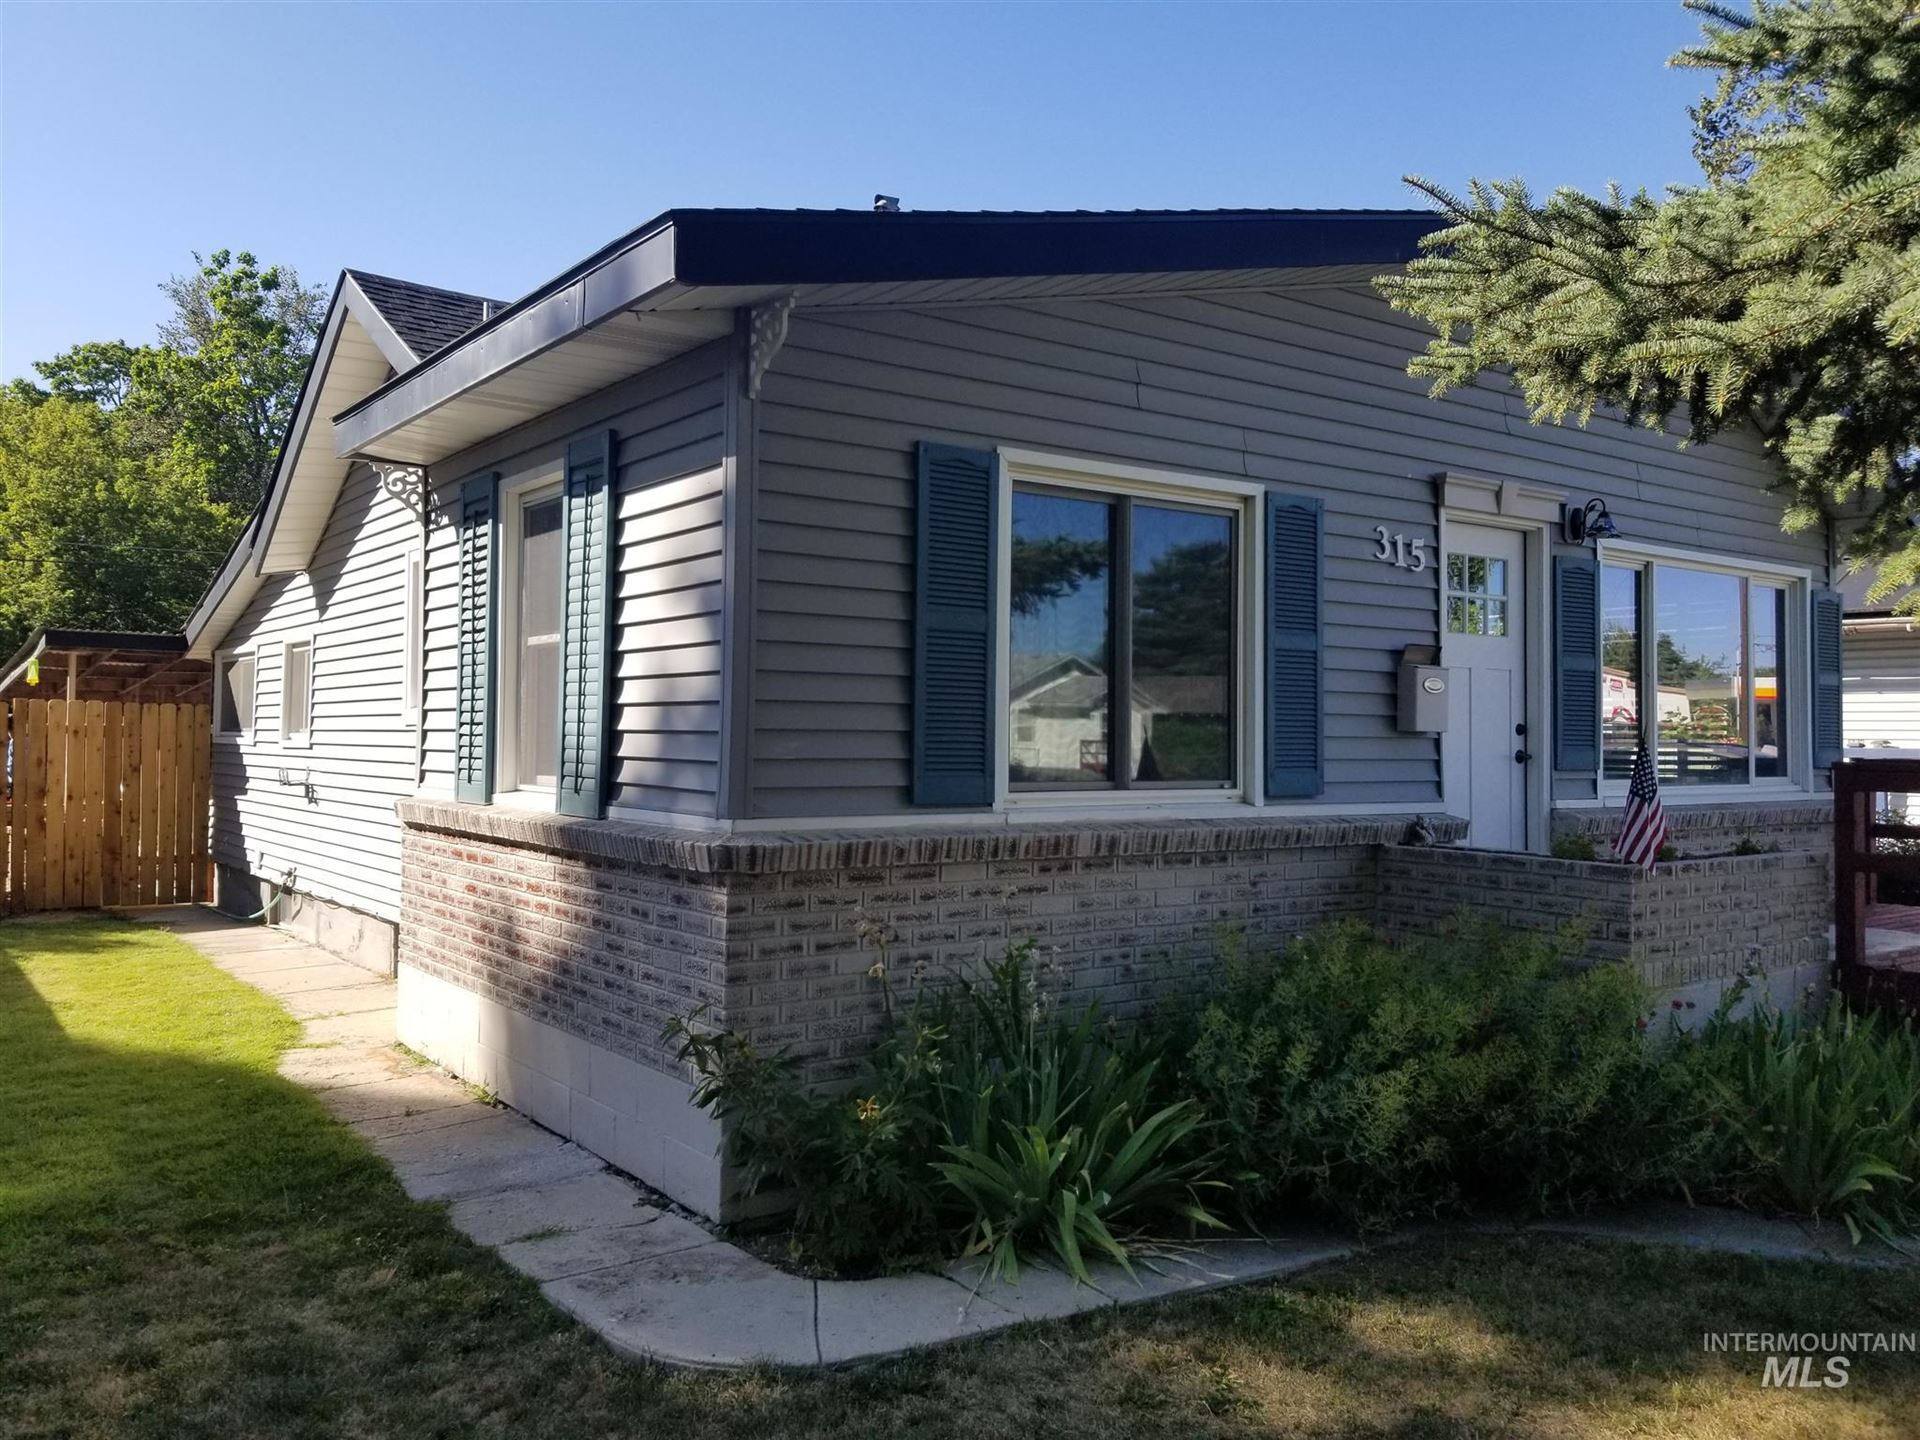 315 22nd Ave. So., Nampa, ID 83651 - MLS#: 98773736